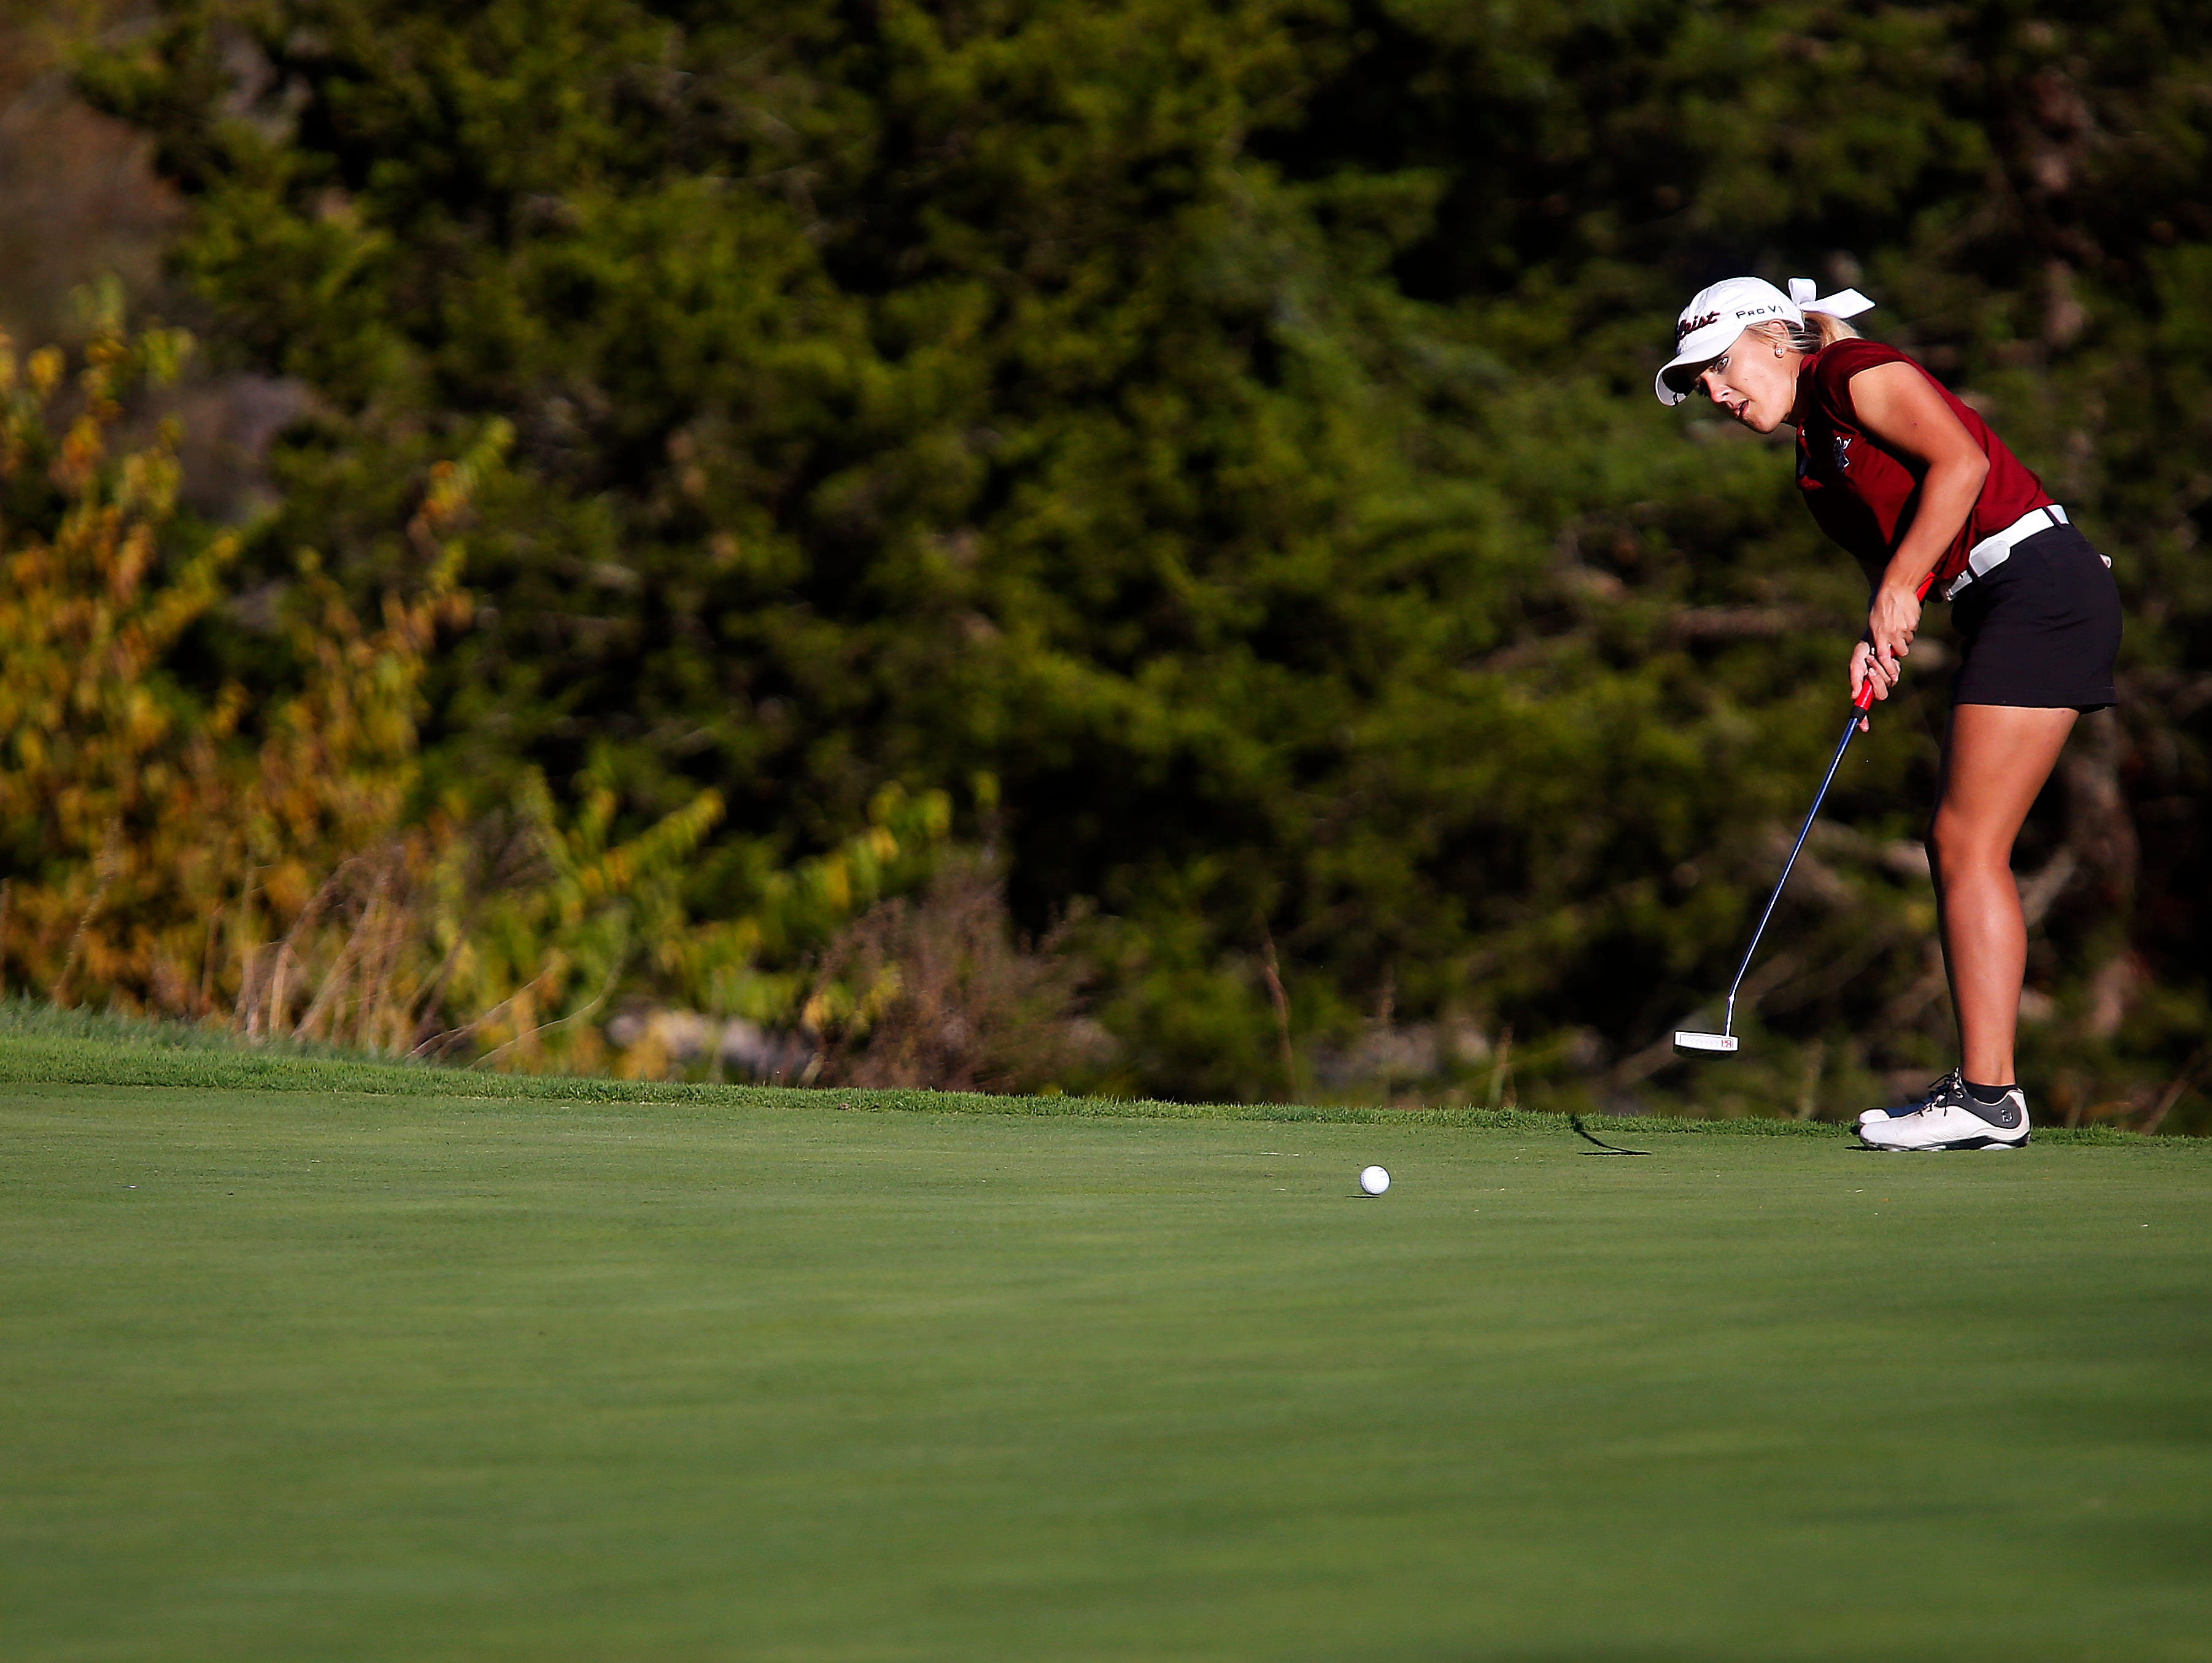 Warrensburg High School golfer Taylor BeDell putts on the 18th green during the 2015 MSHSAA Class 2 Girls Golf State Championship played at Rivercut Golf Club in Springfield, Mo. on Oct. 13, 2015. BeDell barely avoided a playoff with Kickapoo's Ari Acuff after Acuff missed an eagle putt on the 18th to give BeDell the state title.